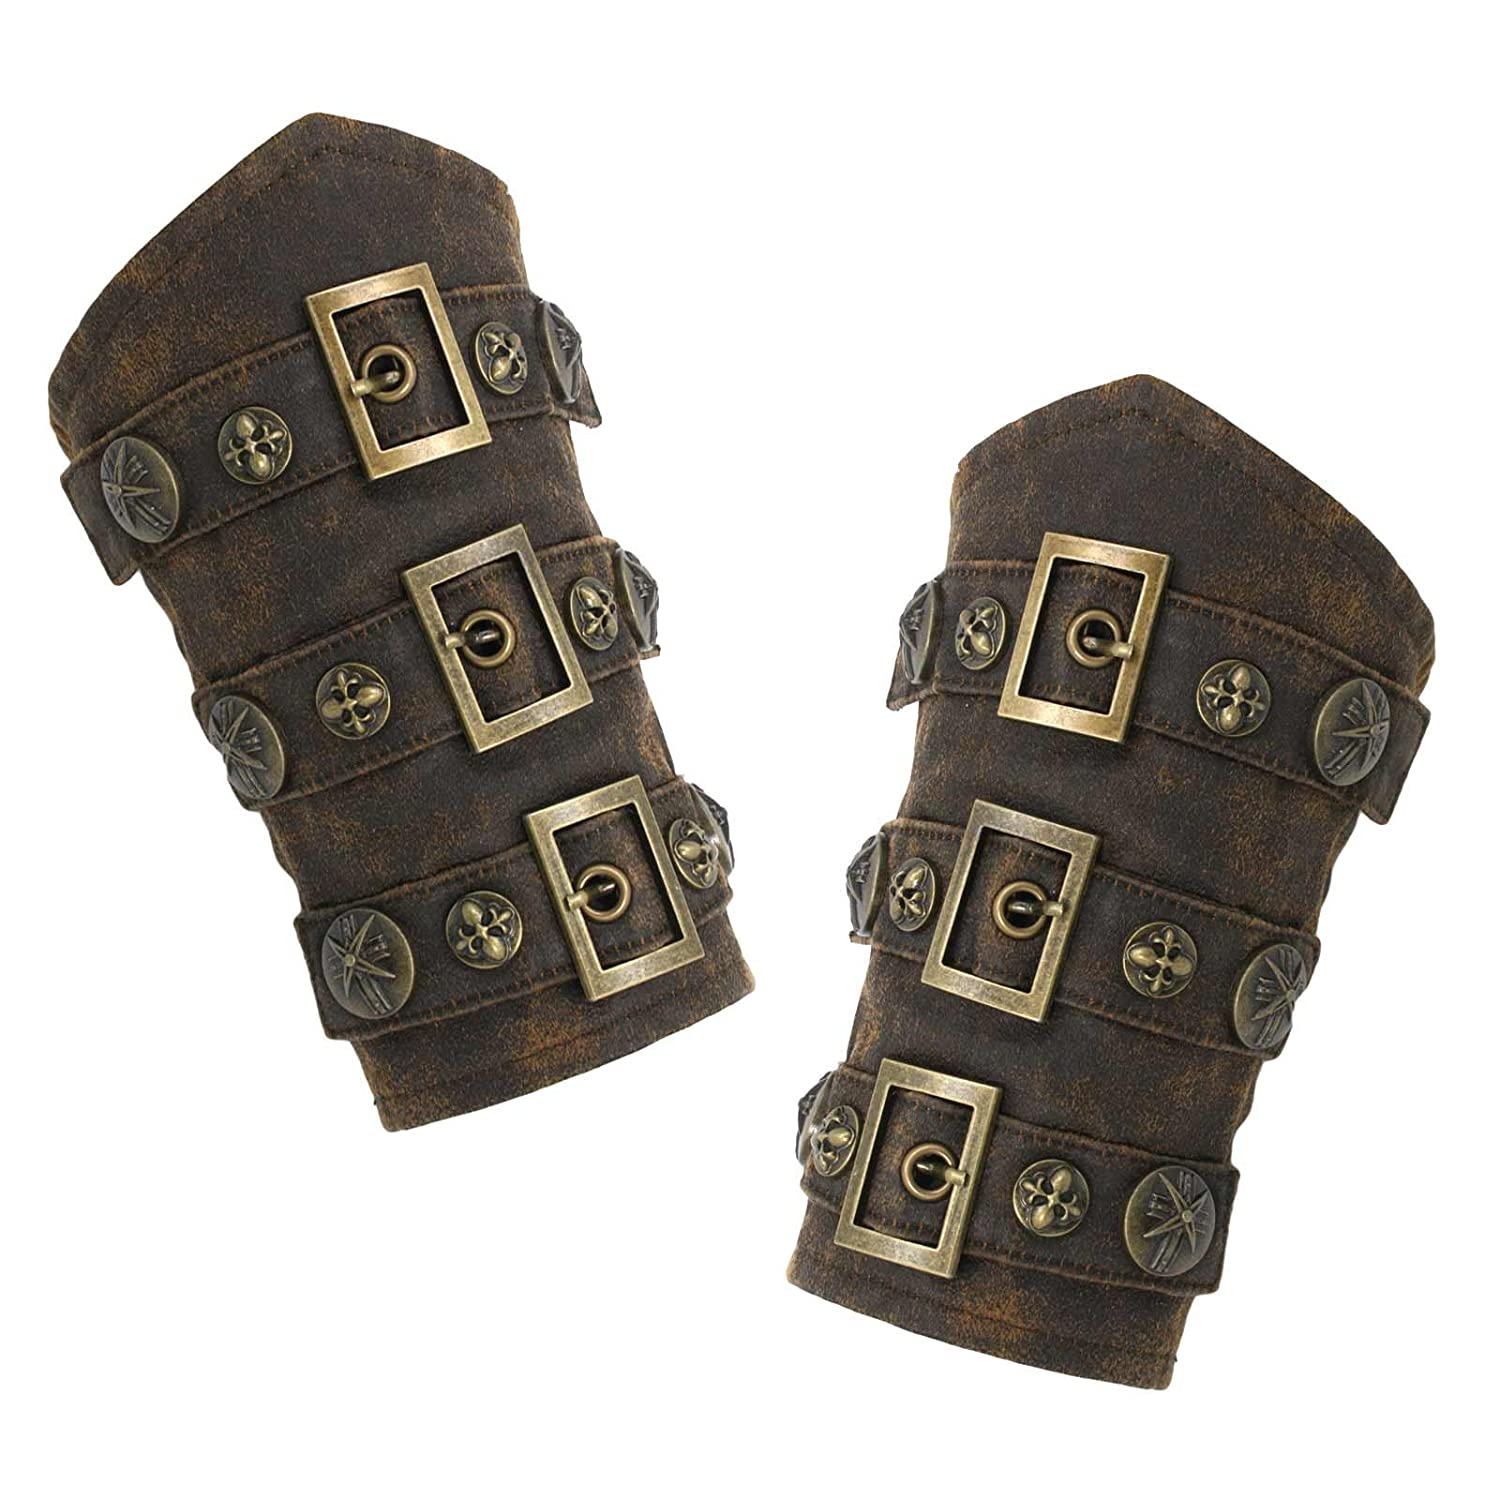 Men's Steampunk Goggles, Guns, Gadgets & Watches Faux Leather Steampunk Armor Cuffs $36.95 AT vintagedancer.com